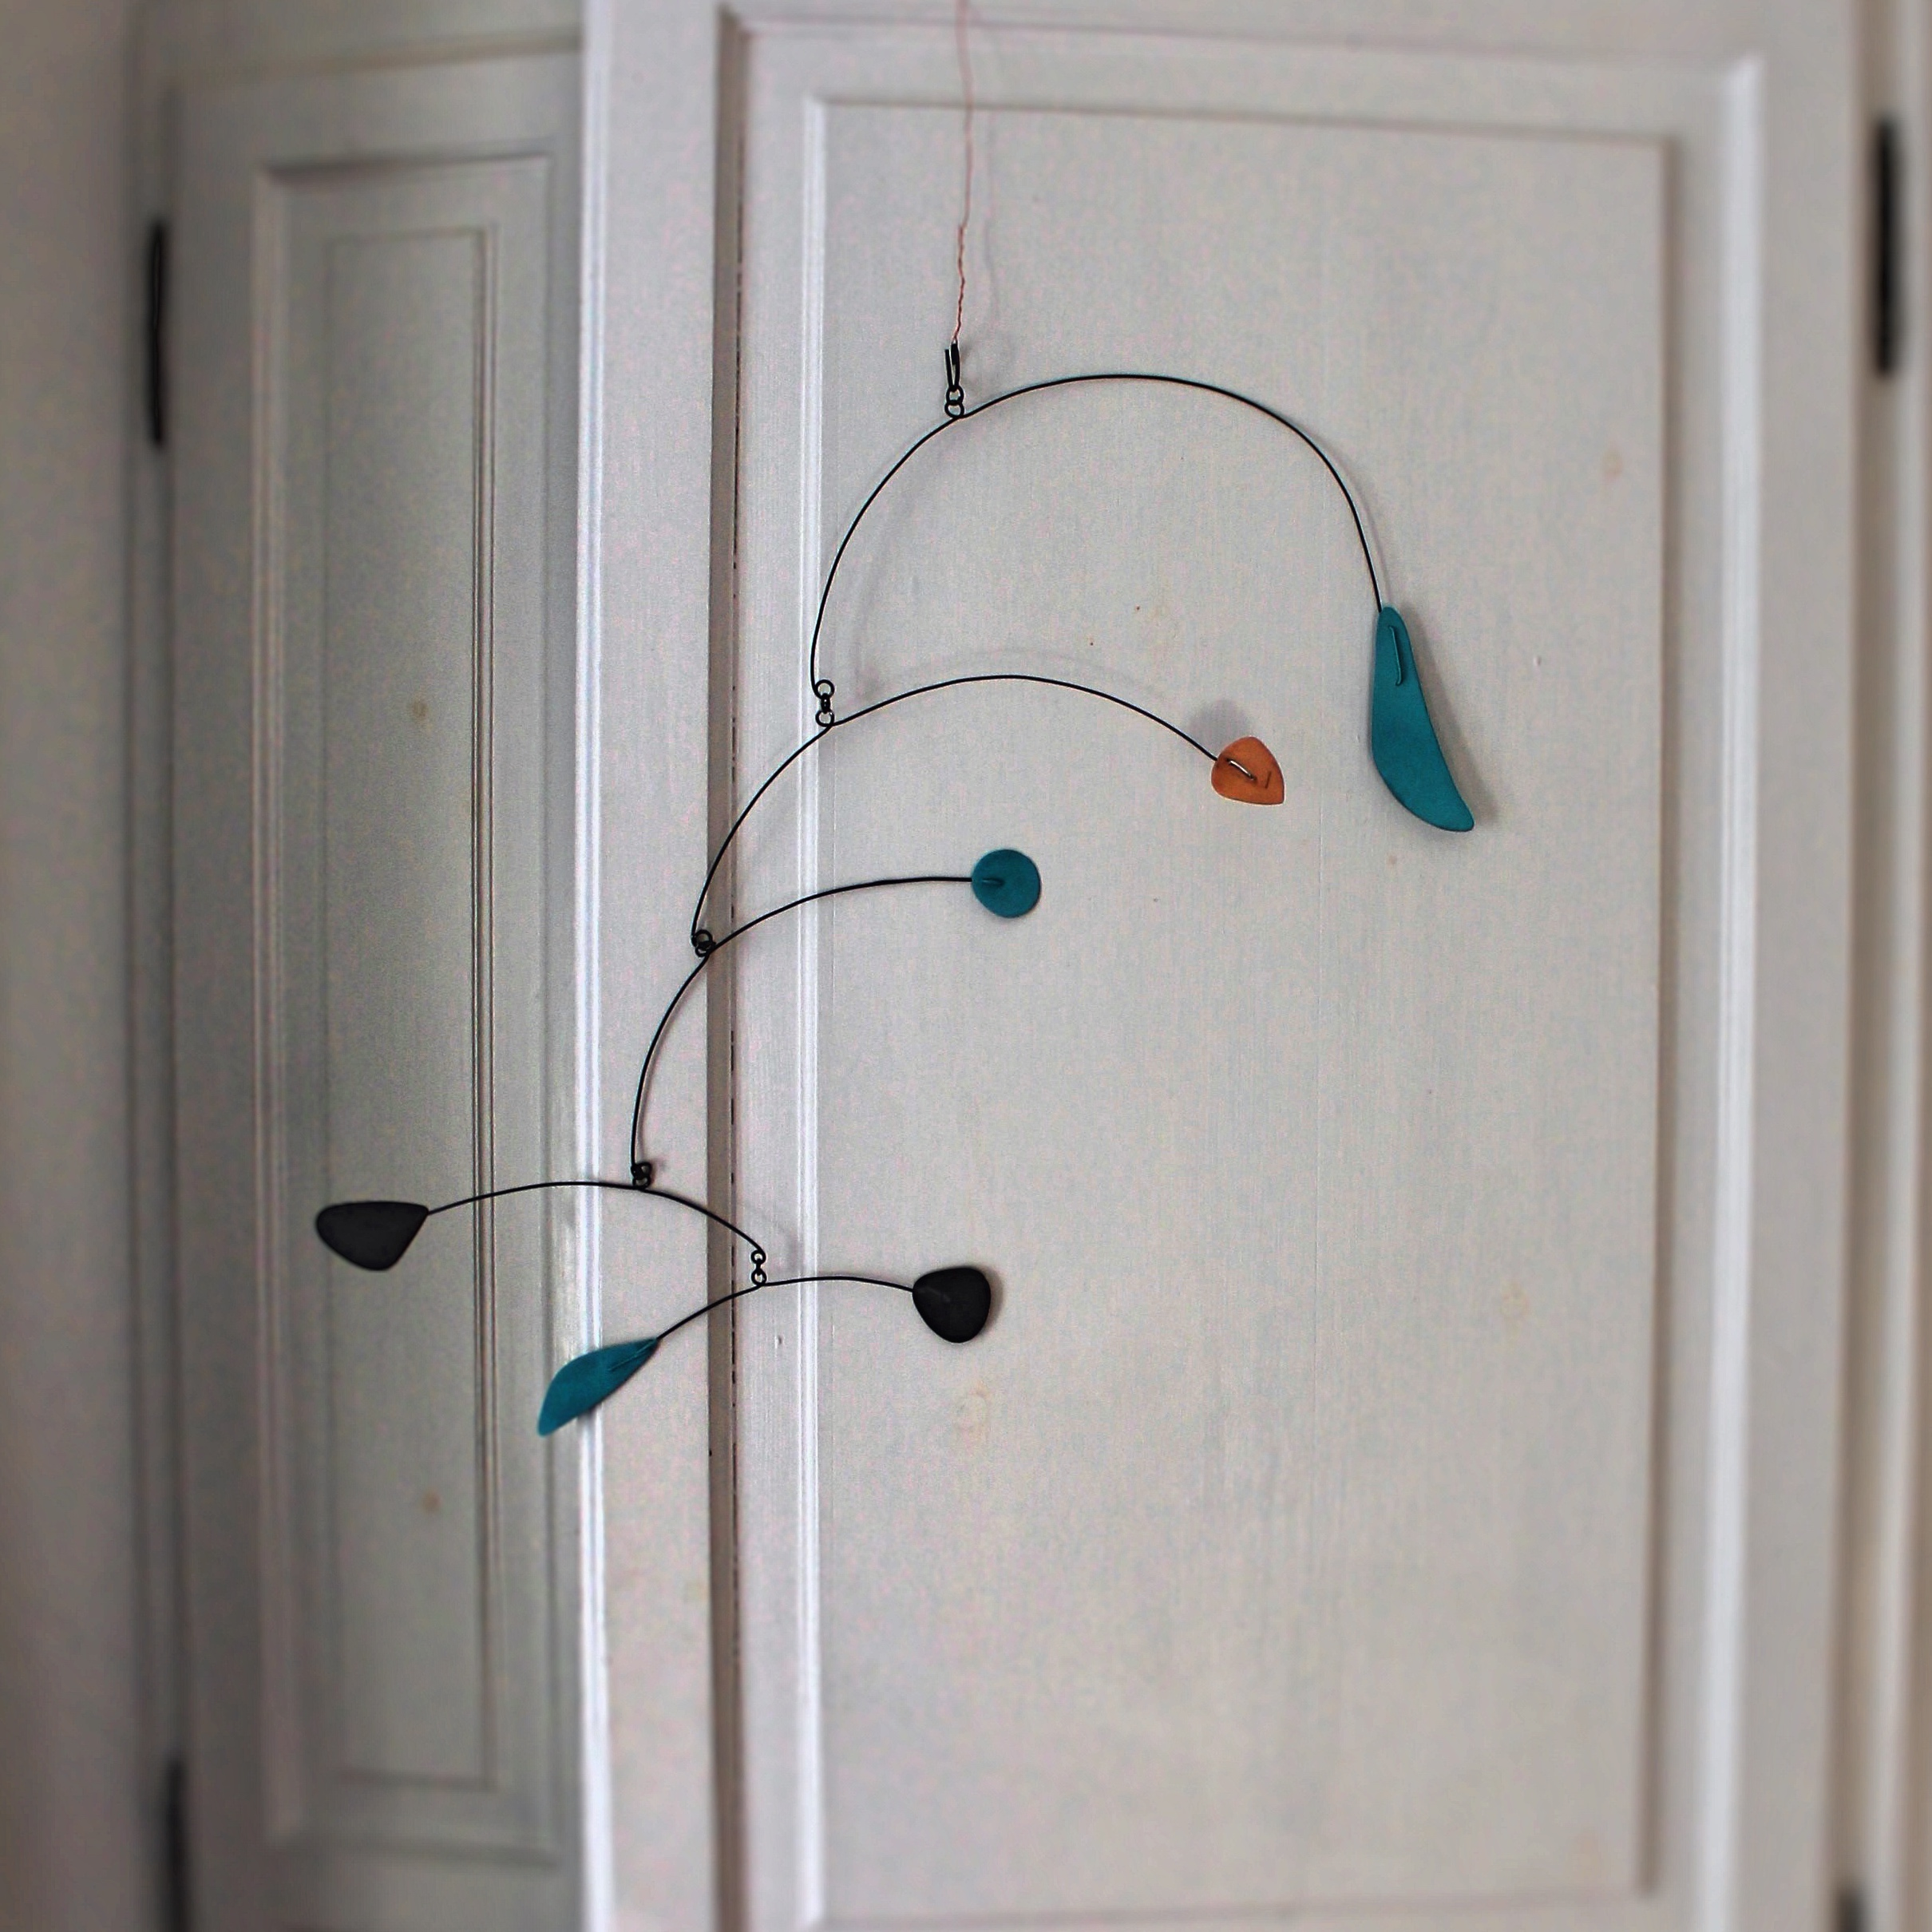 Picture of Calder-style Modern Art Mobile